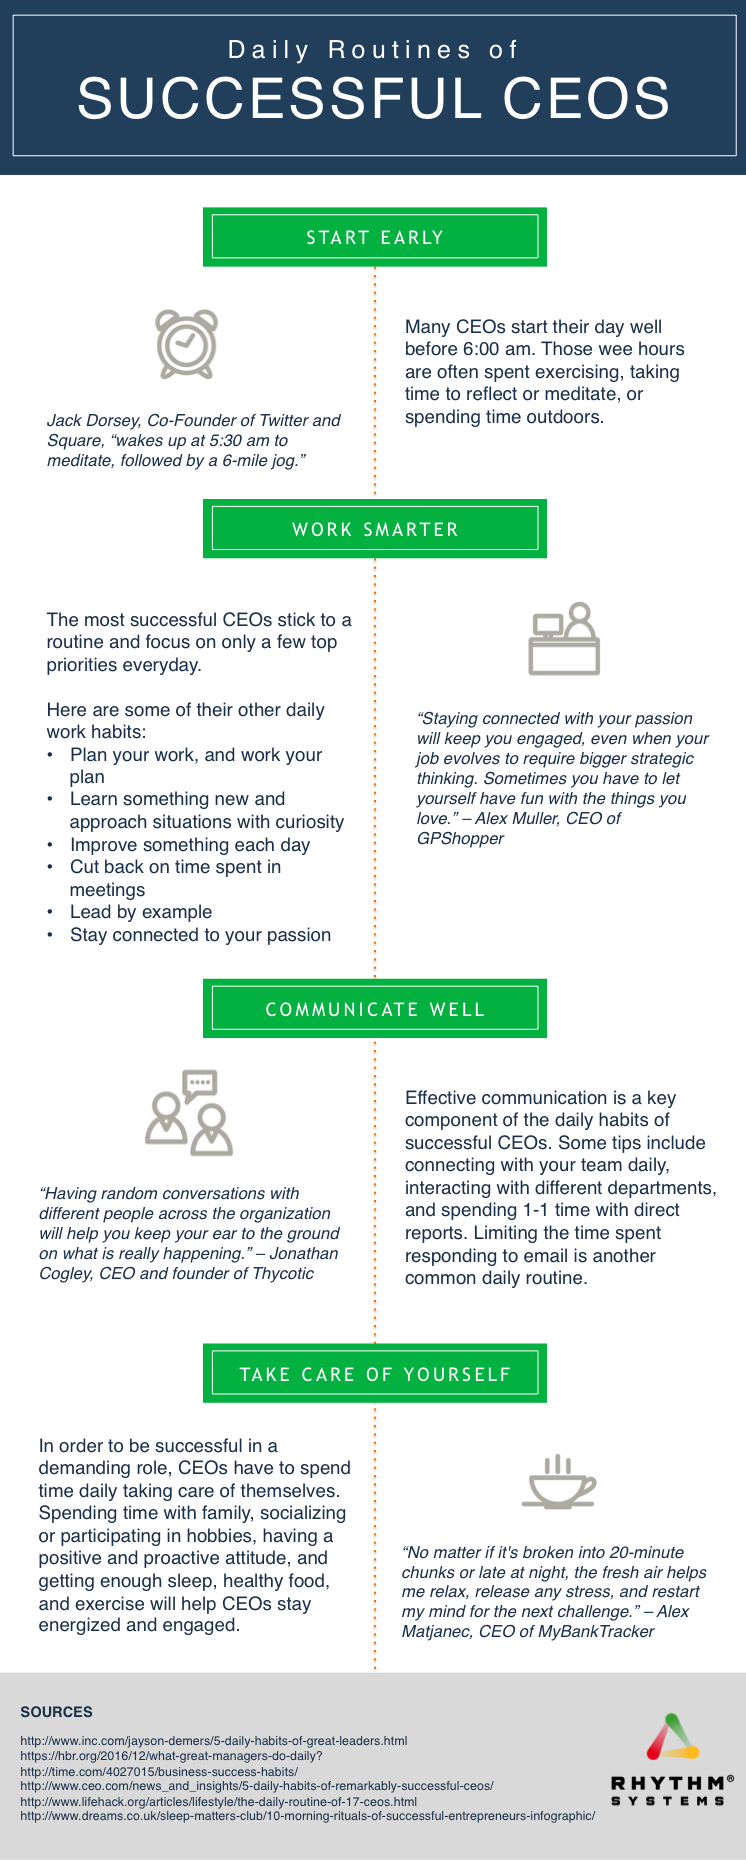 Daily Routines of Successful CEOs (Infographic)